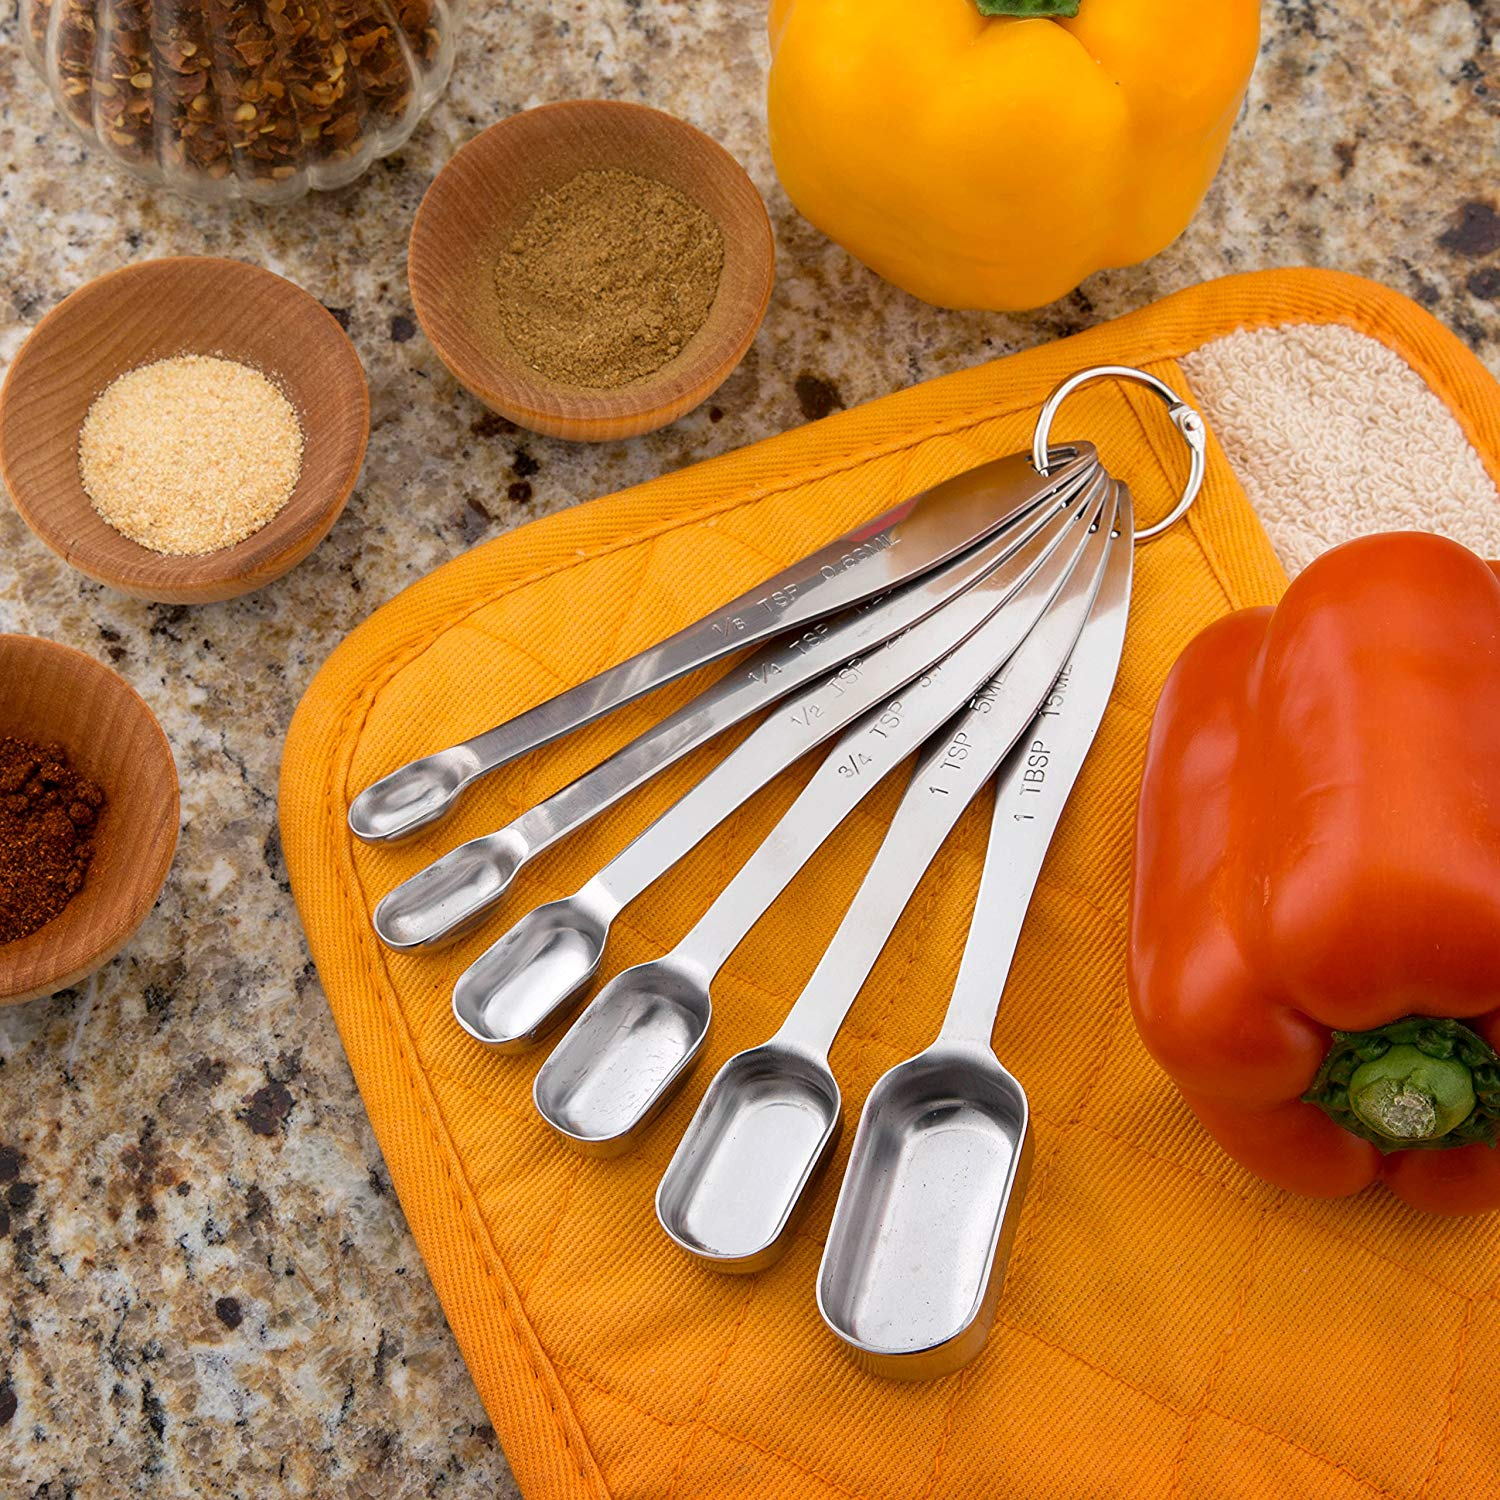 Top 10 Best Measuring Spoons Review-11